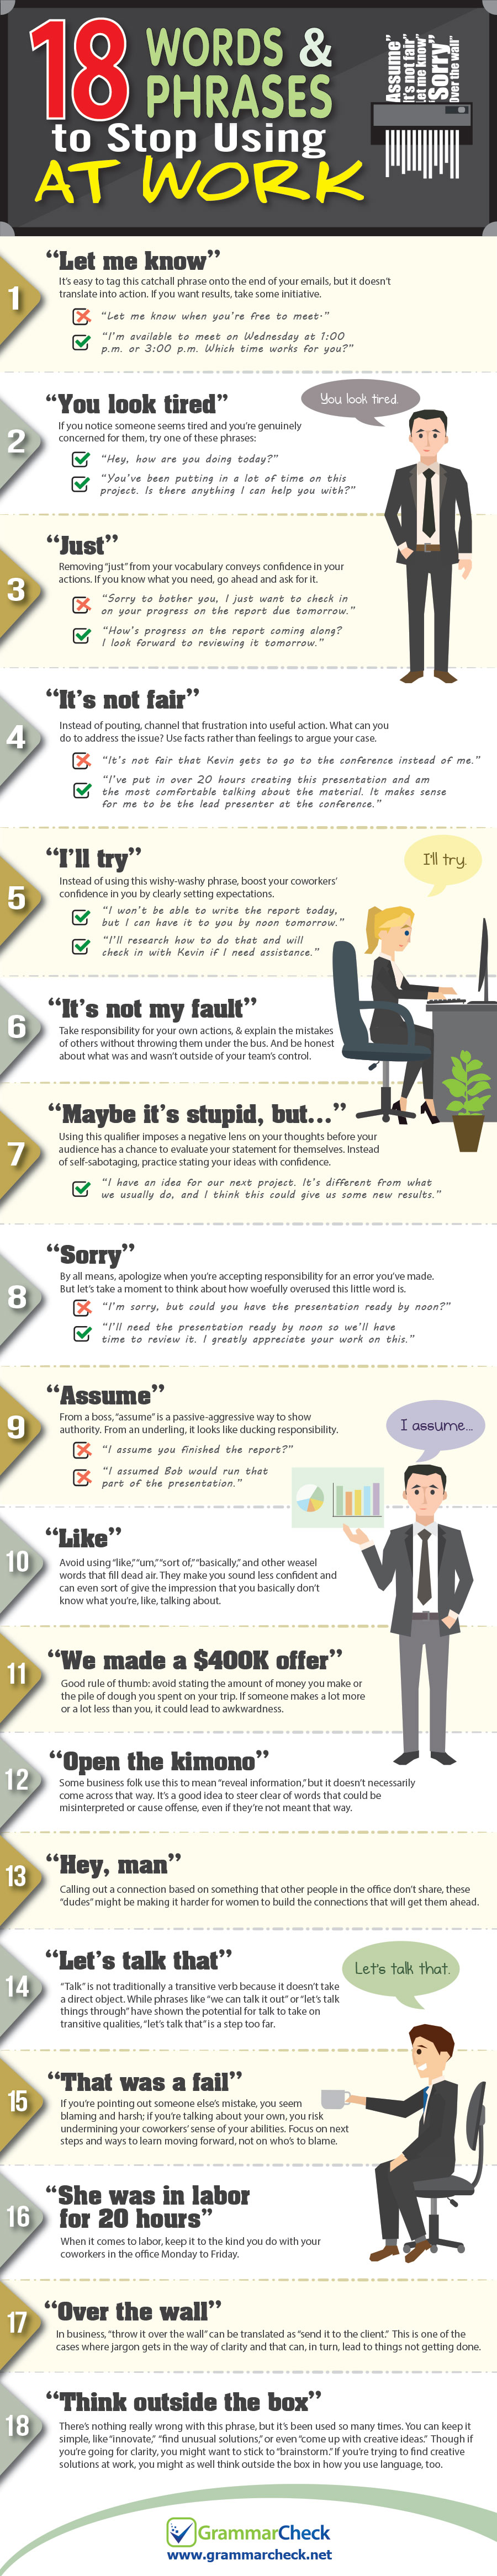 18 Words and Phrases to Stop Using at Work (Infographic)